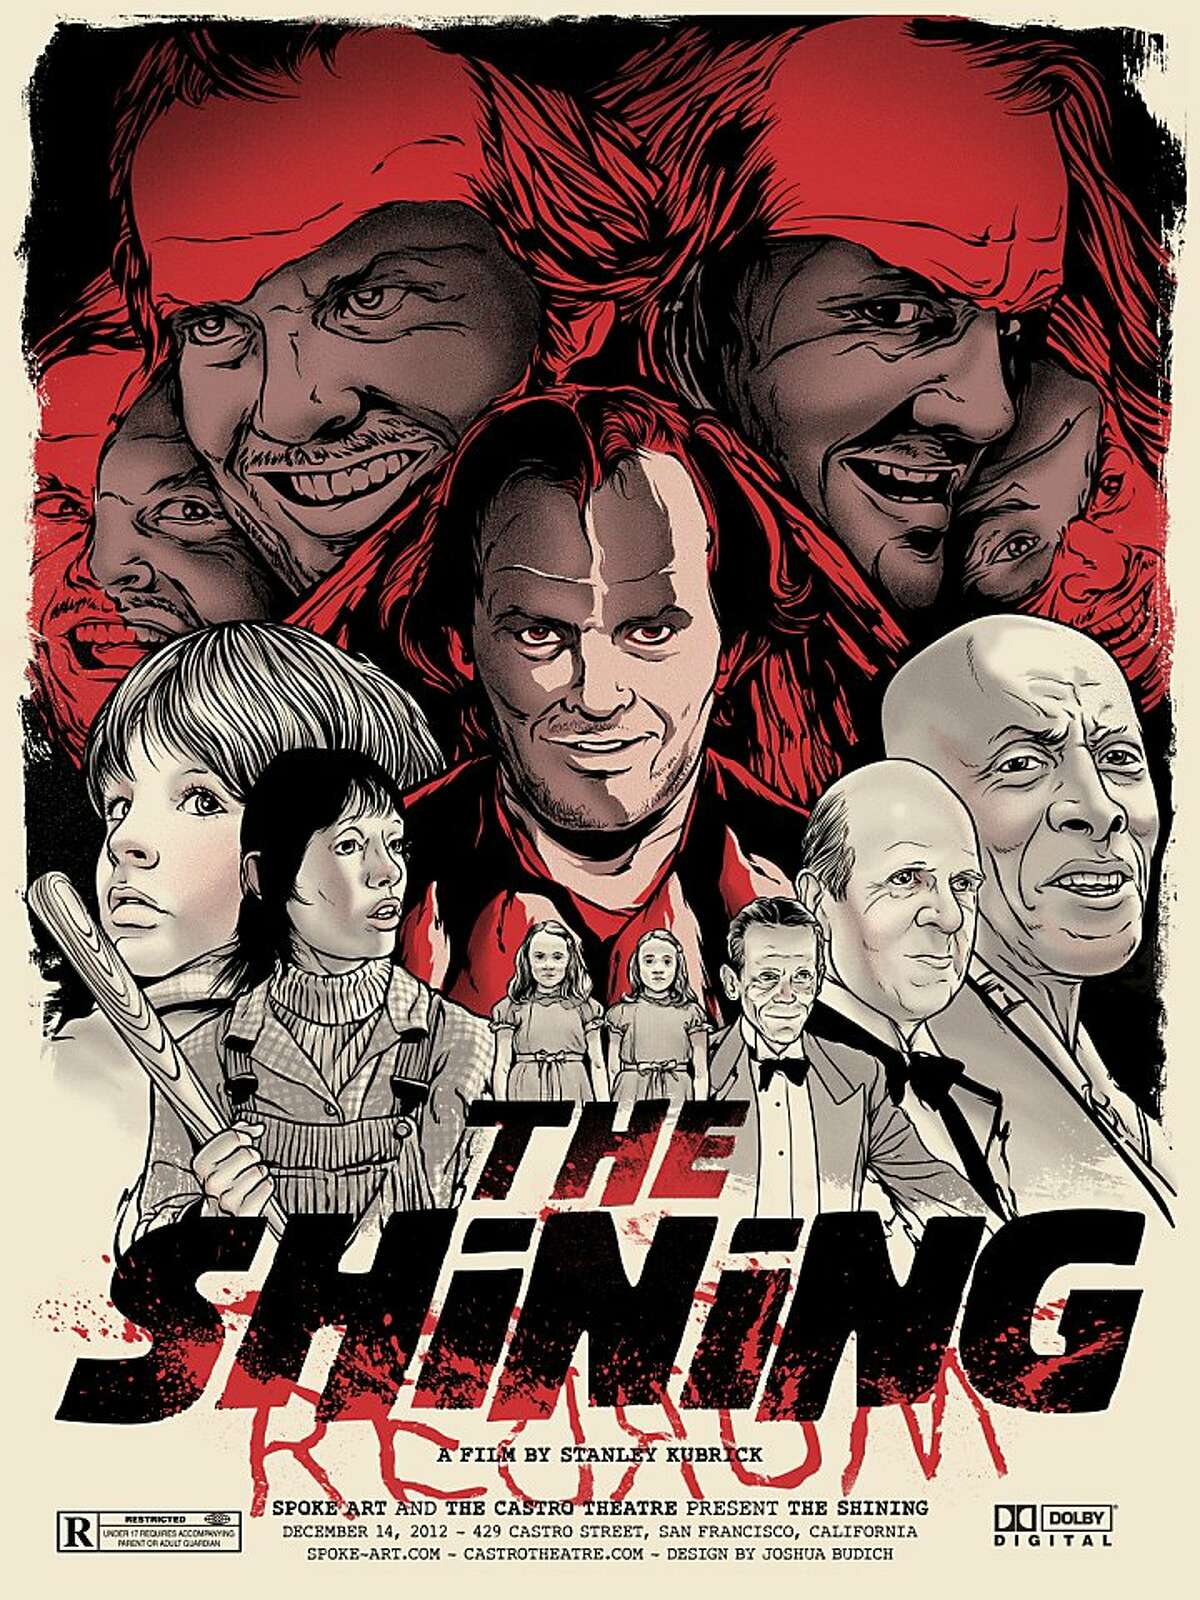 An illustrated poster of The Shining by illustrator Joshua Budich who's work were shown at Spoke Art.